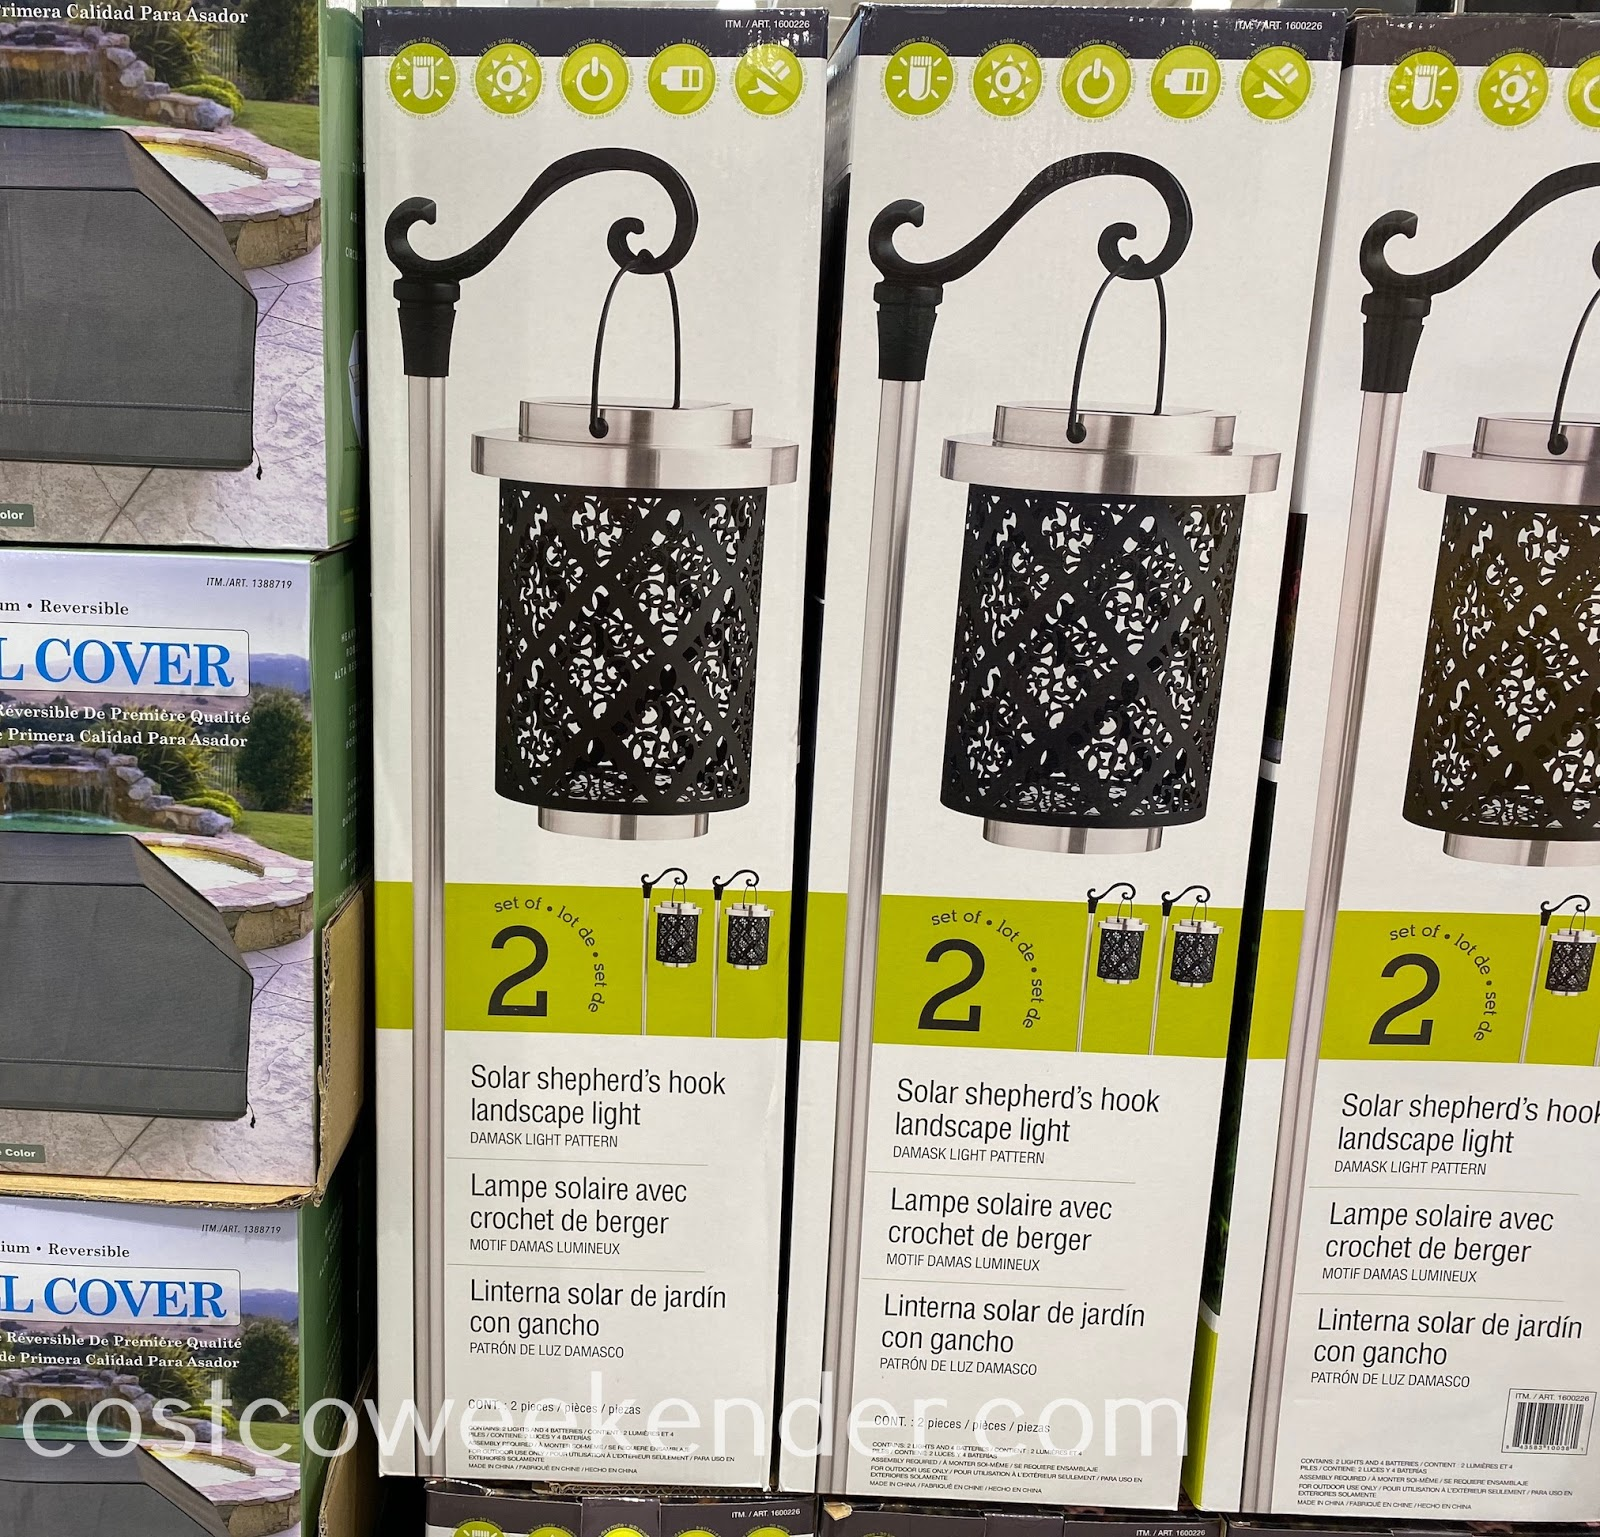 Add some light and decor to your yard with GTX Solar Shepherd's Hook Landscape Lights